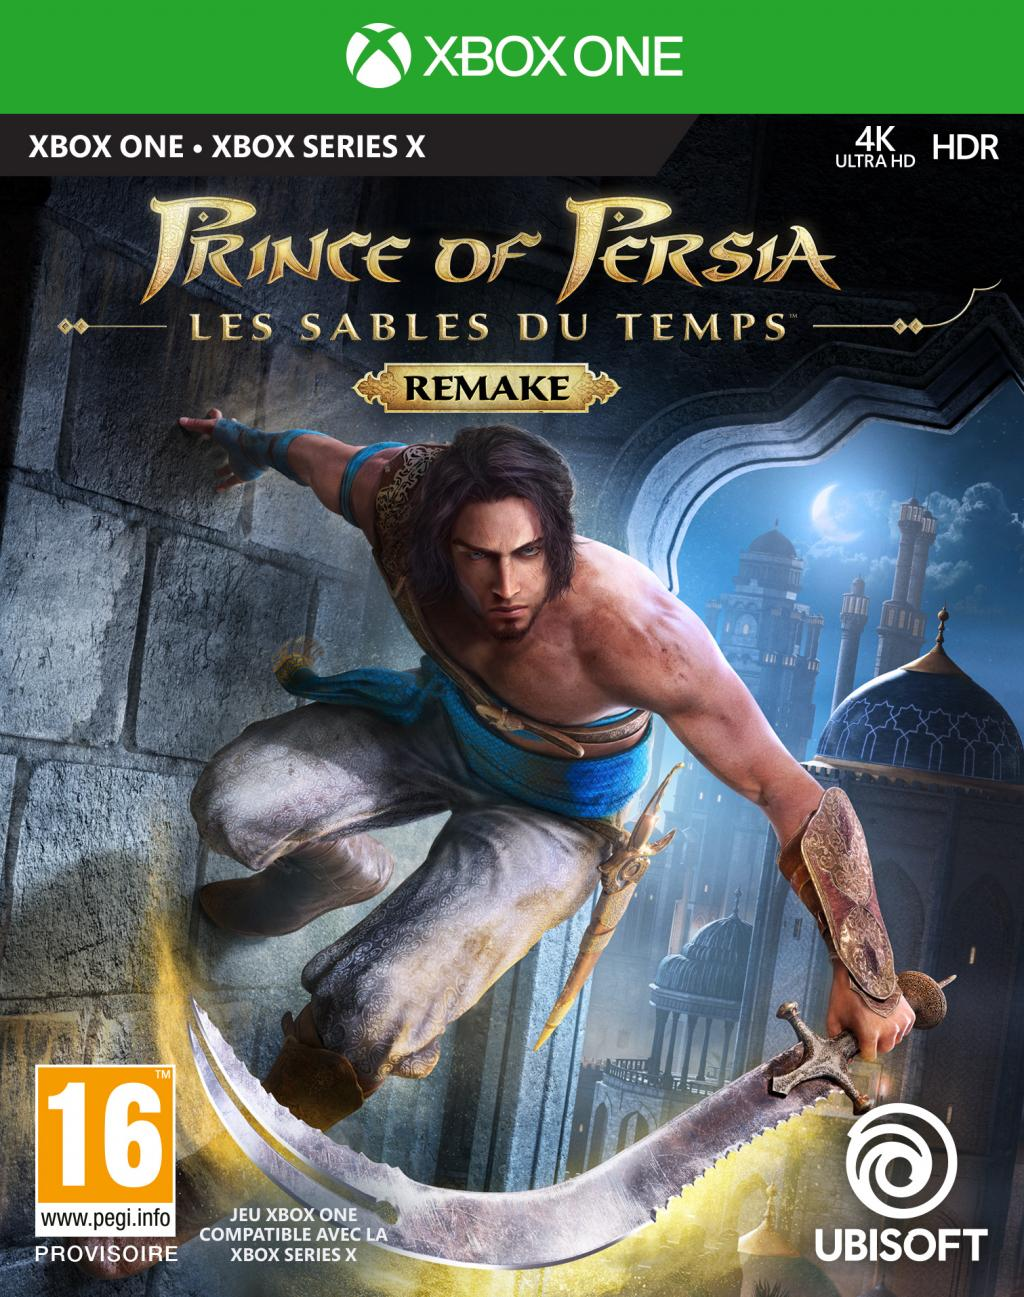 Prince of Persia : The Sands of Time REMAKE - XB ONE / SERIES X_1